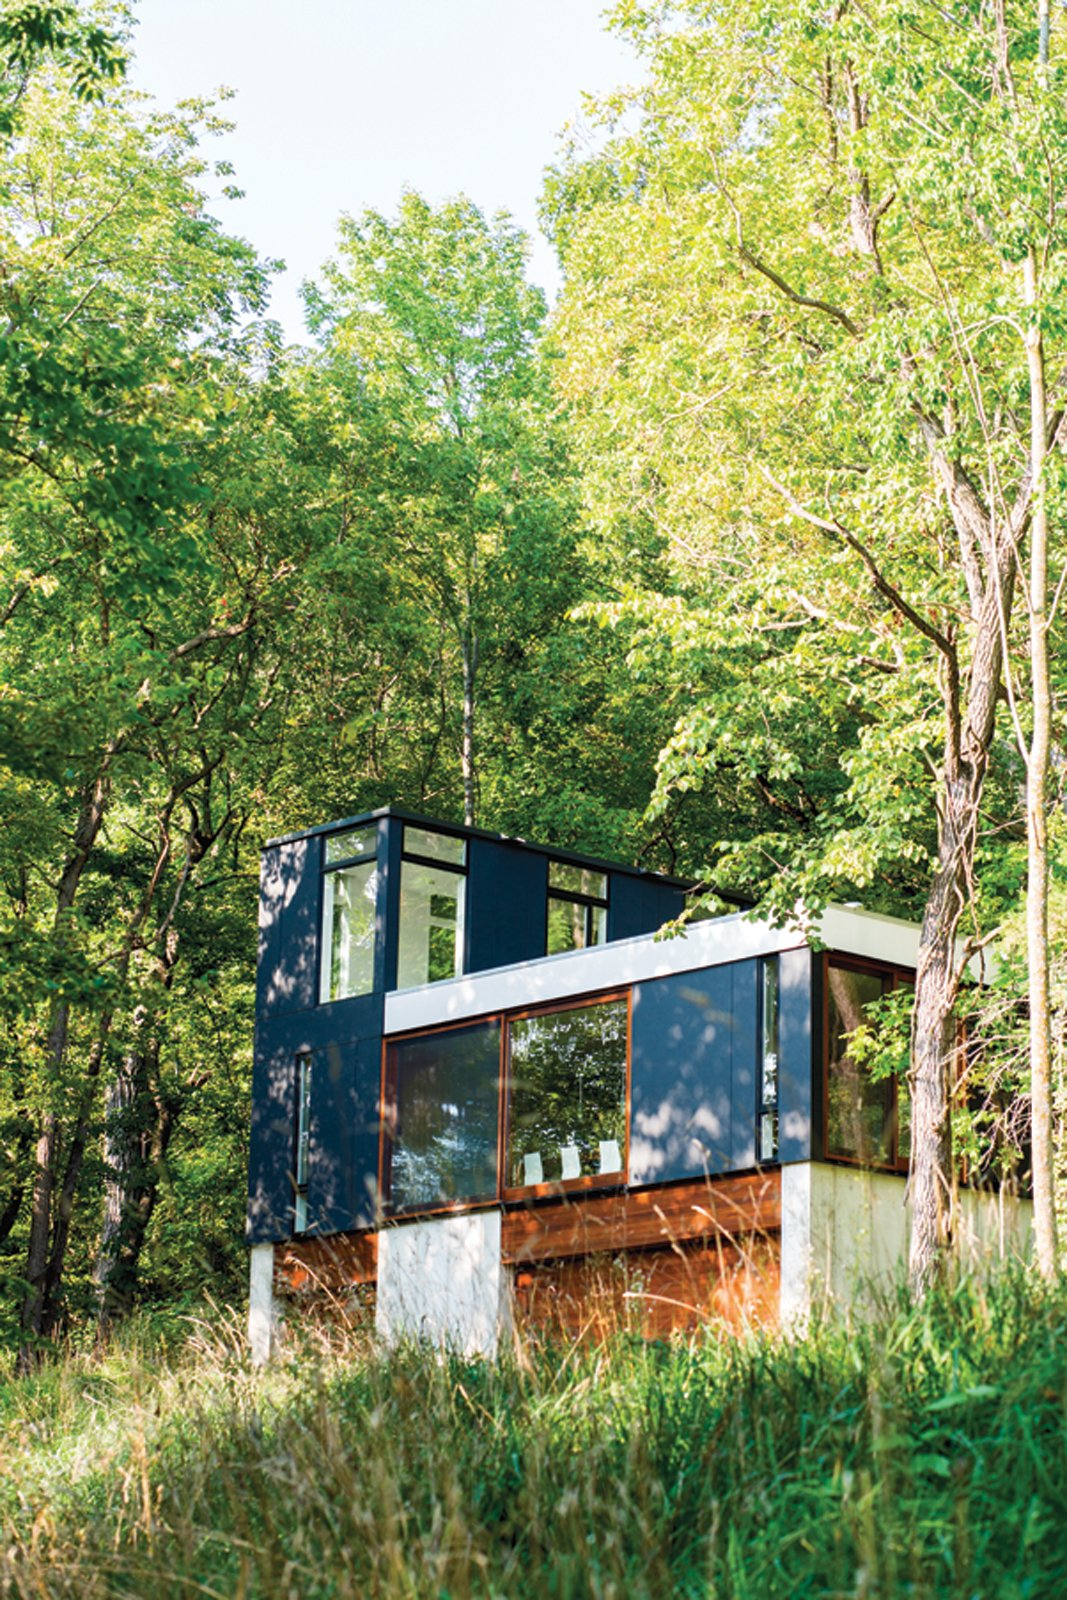 Short StackA tiny cabin in the Wisconsin Woods makes a big impact with Johnsen & Schmaling's innovative stacked design. The resulting cozy abode is stylish and durable, with stunning views of the surrounding landscape. Tagged: Exterior, Cabin Building Type, and Metal Siding Material.  Photo 15 of 101 in 101 Best Modern Cabins from Preview the February 'Modern for Less' Issue